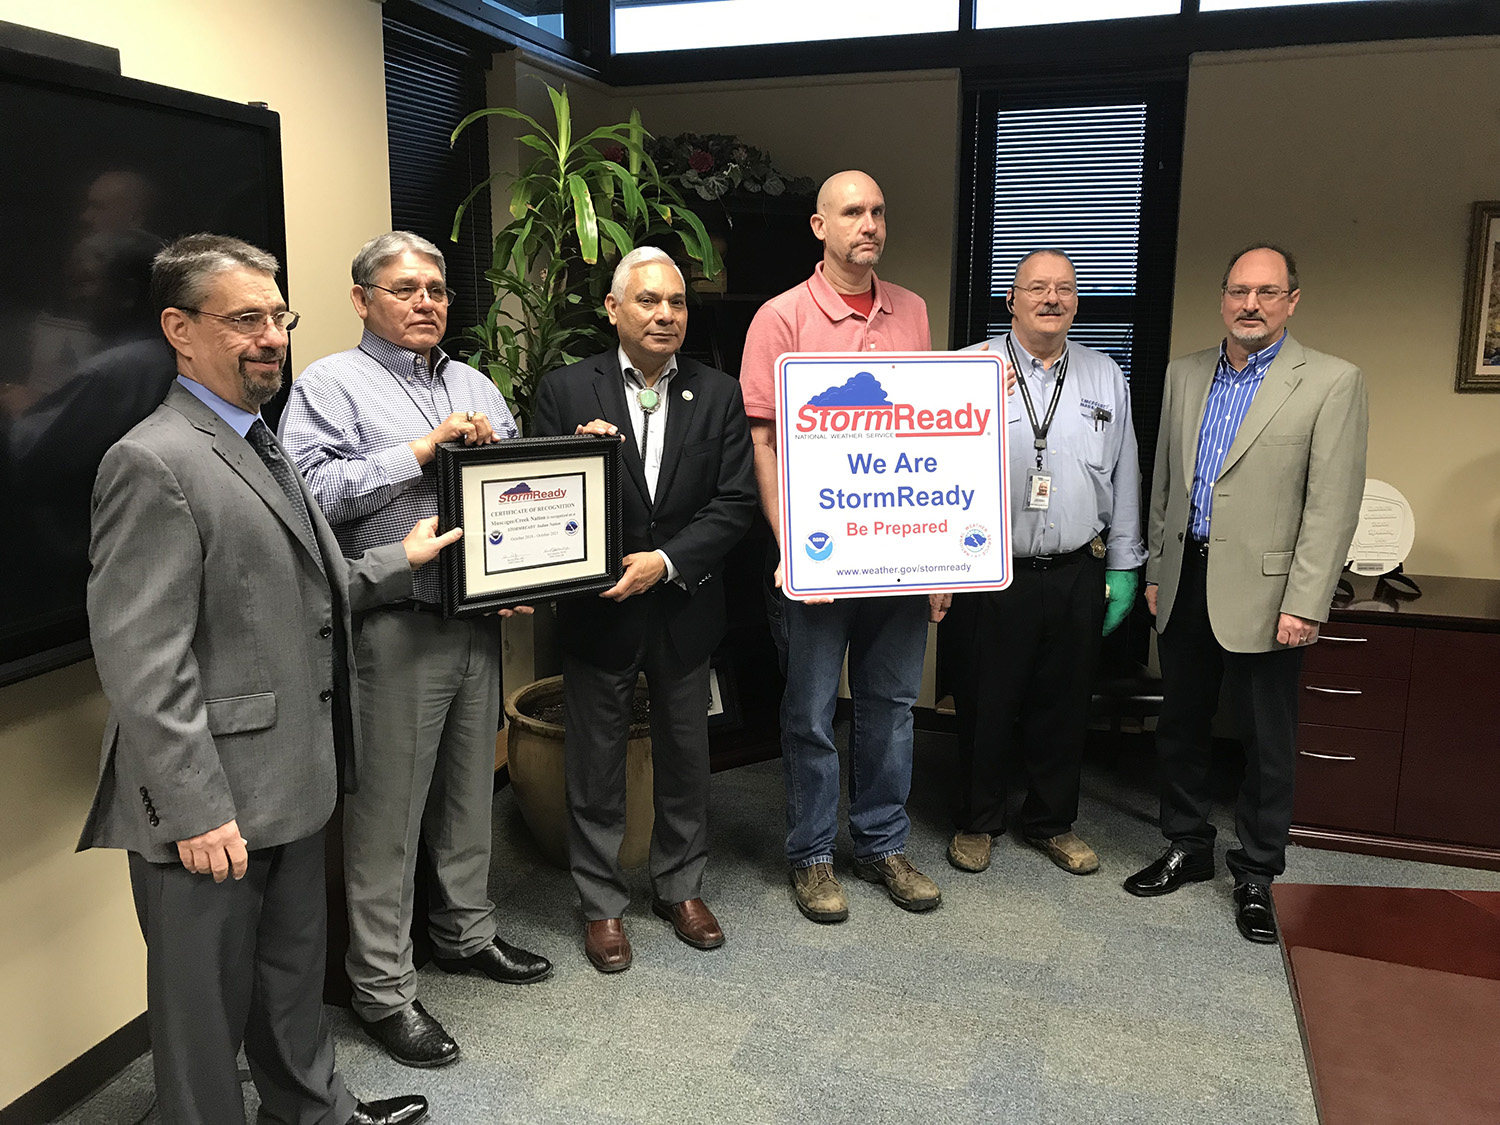 National Weather Service Recognizes Muscogee (Creek) Nation as StormReady Tribal Nation